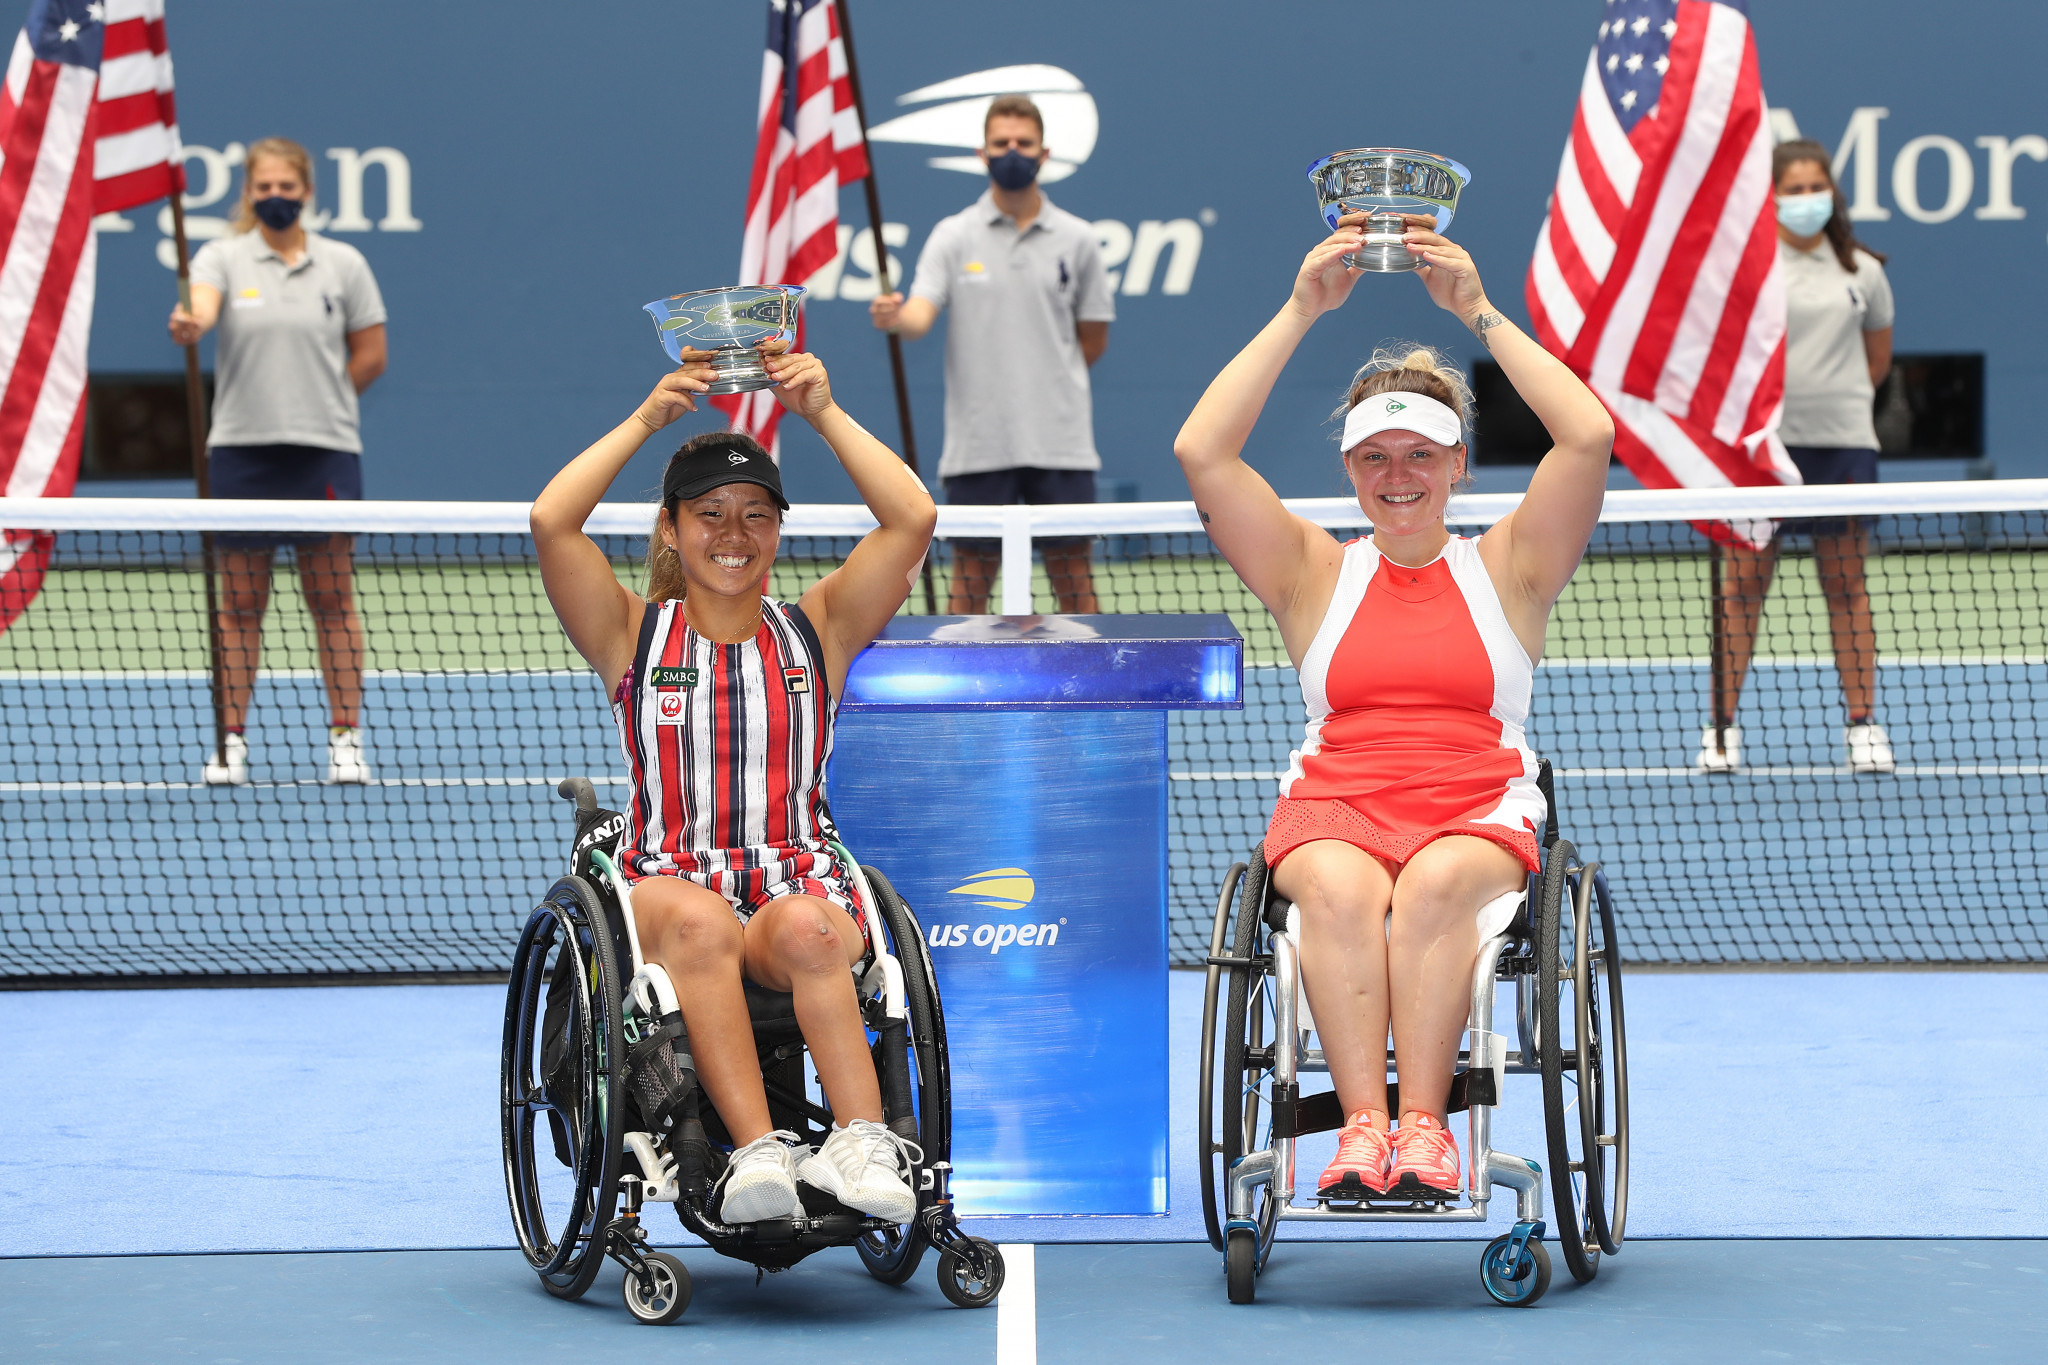 Yui Kamiji (left) and her partner Jordanne Whiley won the women's wheelchair doubles title after beating Dutch top seeds Buis and de Groot ©Getty Images